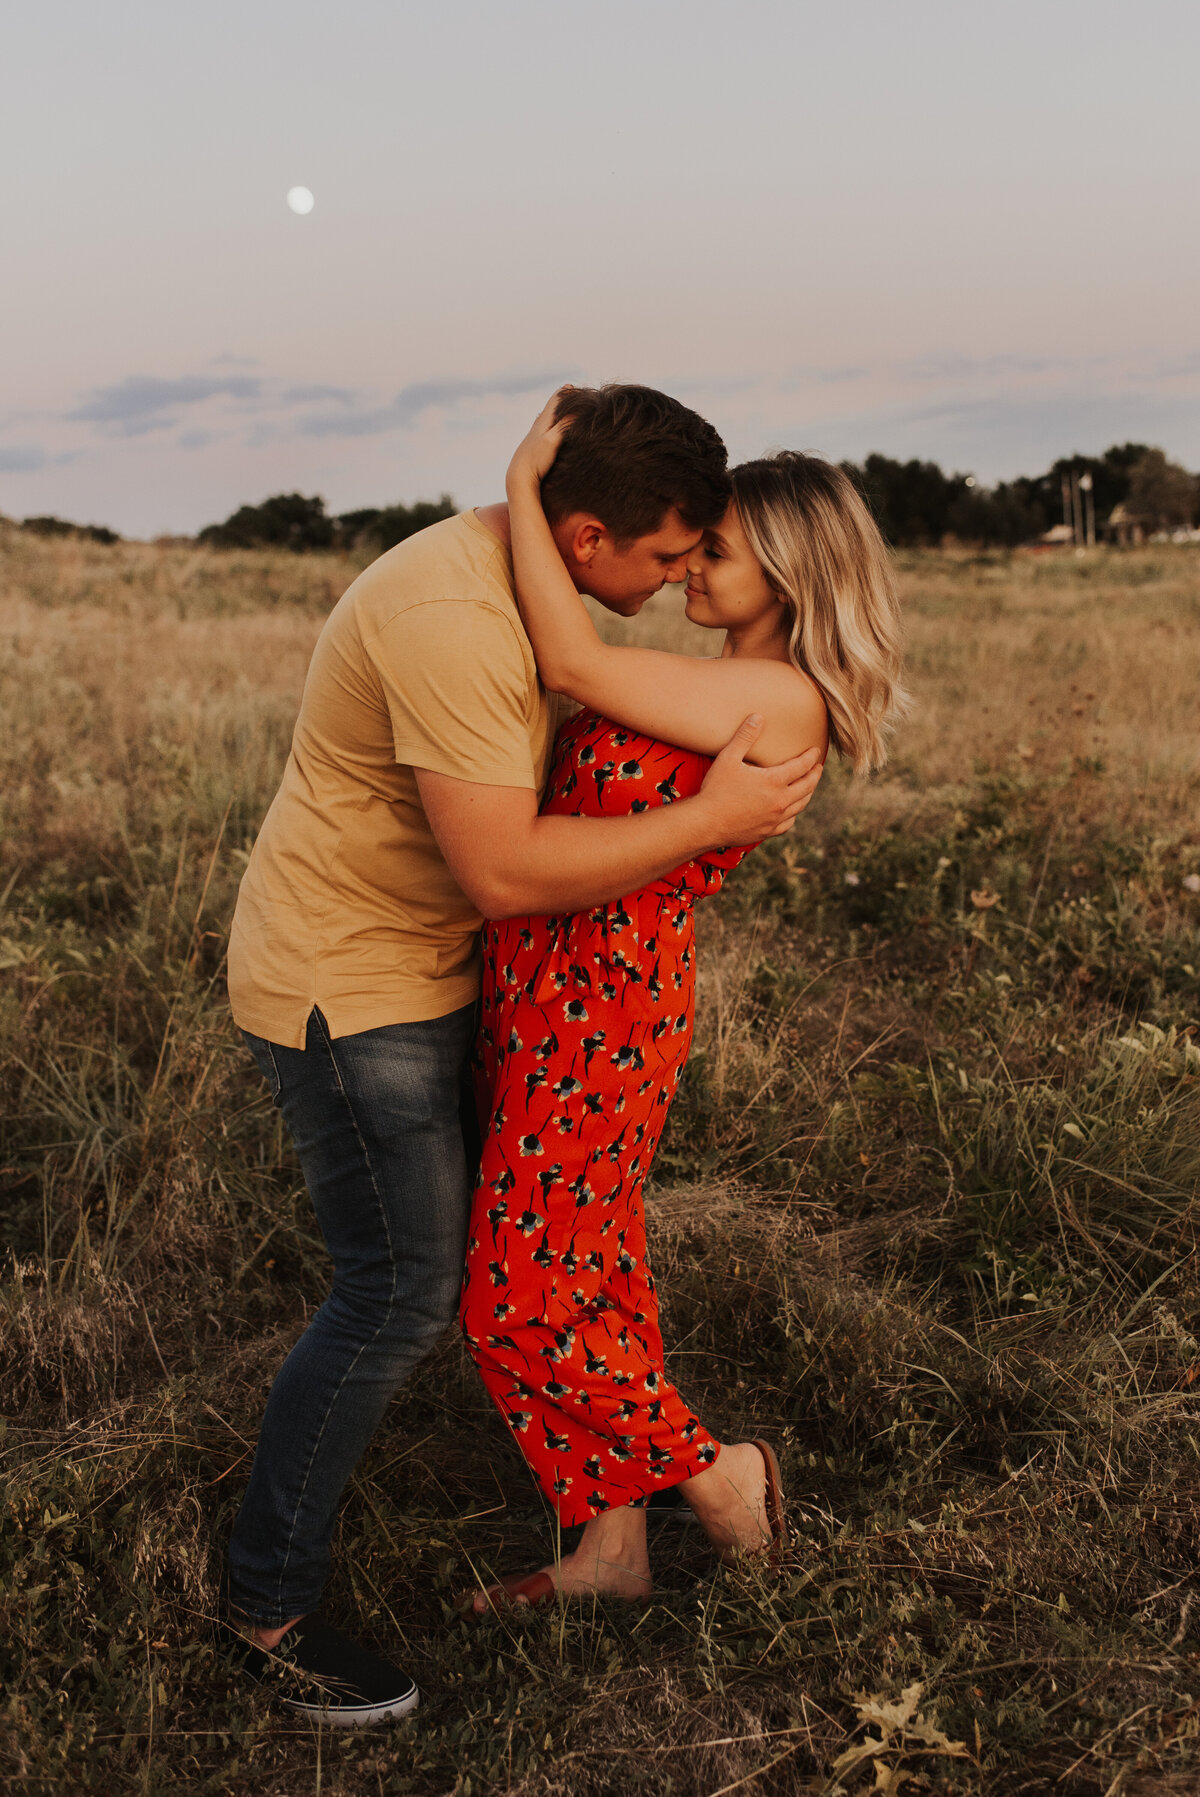 Jess-and-sam-couples-session-arbor-hills-dallas-texas-by-bruna-kitchen-photography-72